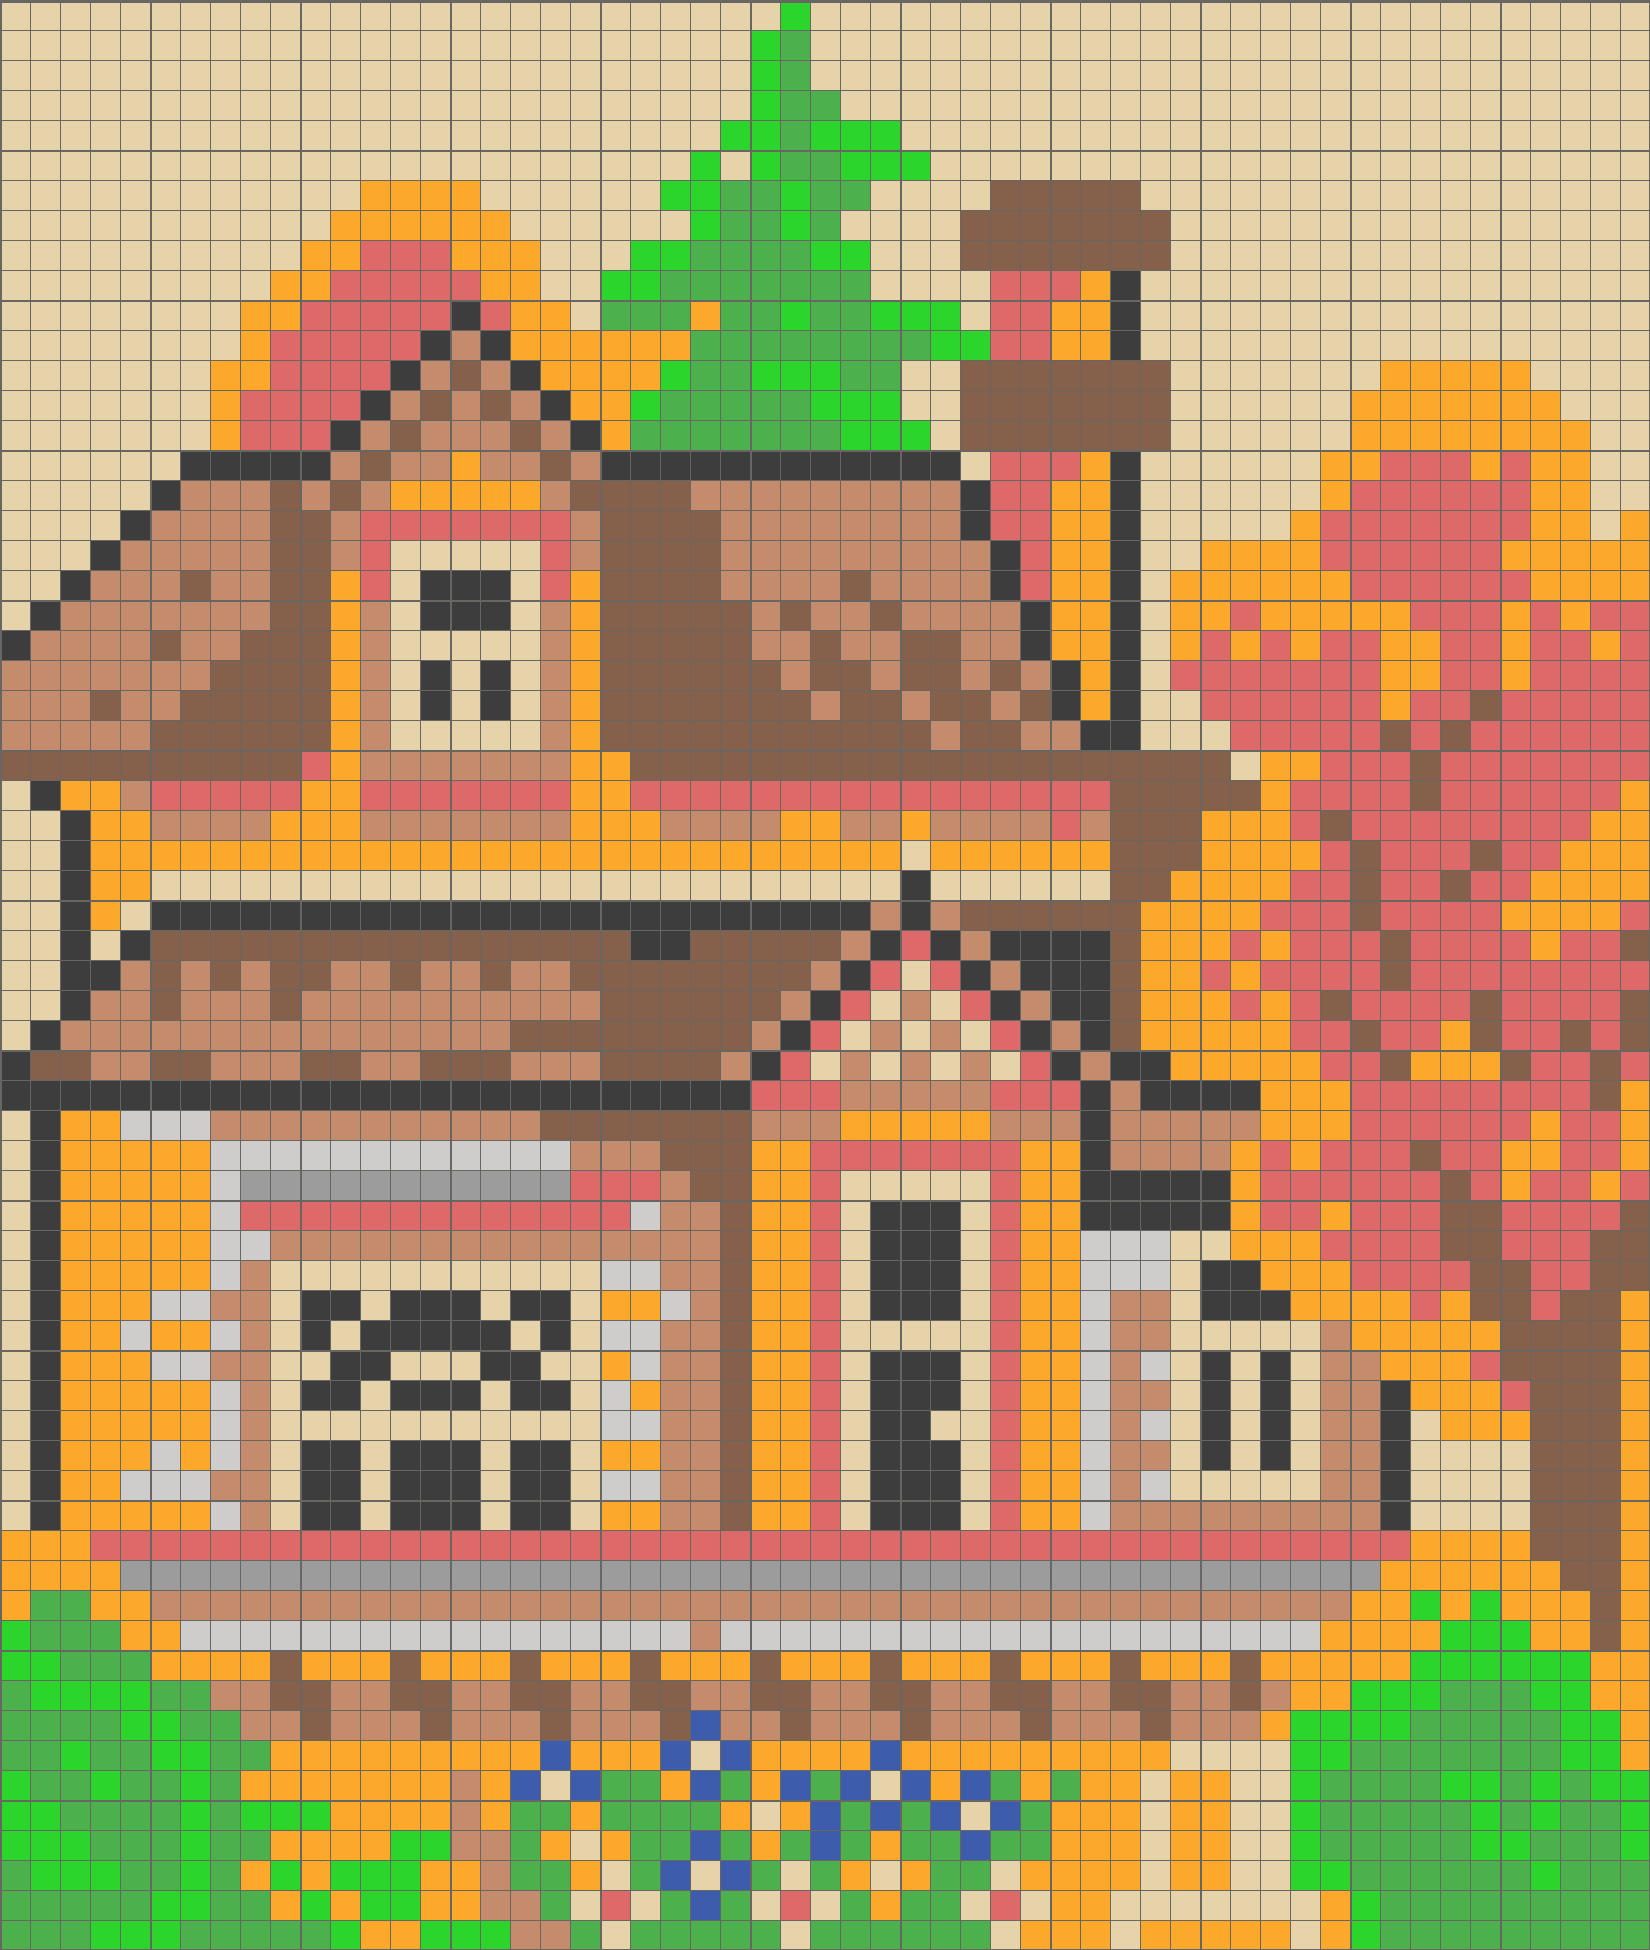 Solution for color CrossMe Level 8.3 - House